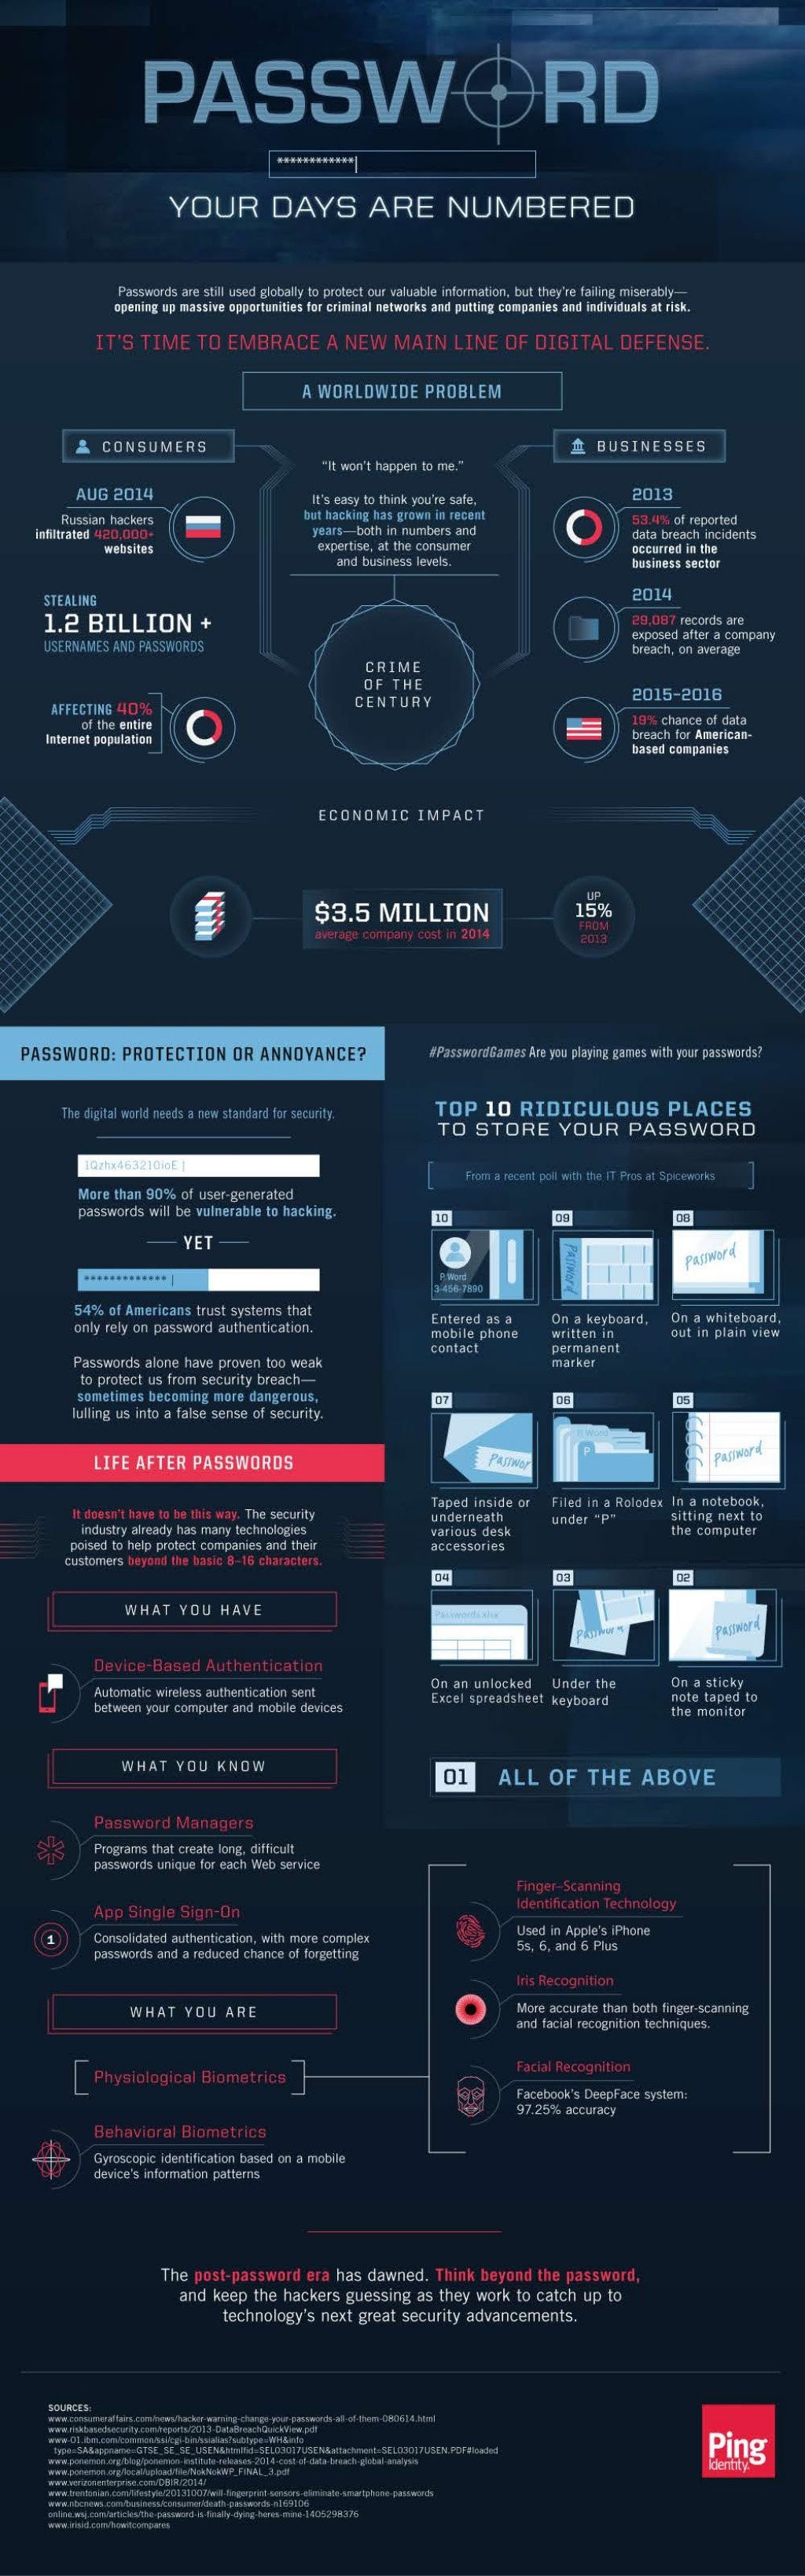 Infographic: Password: Your Days are Numbered